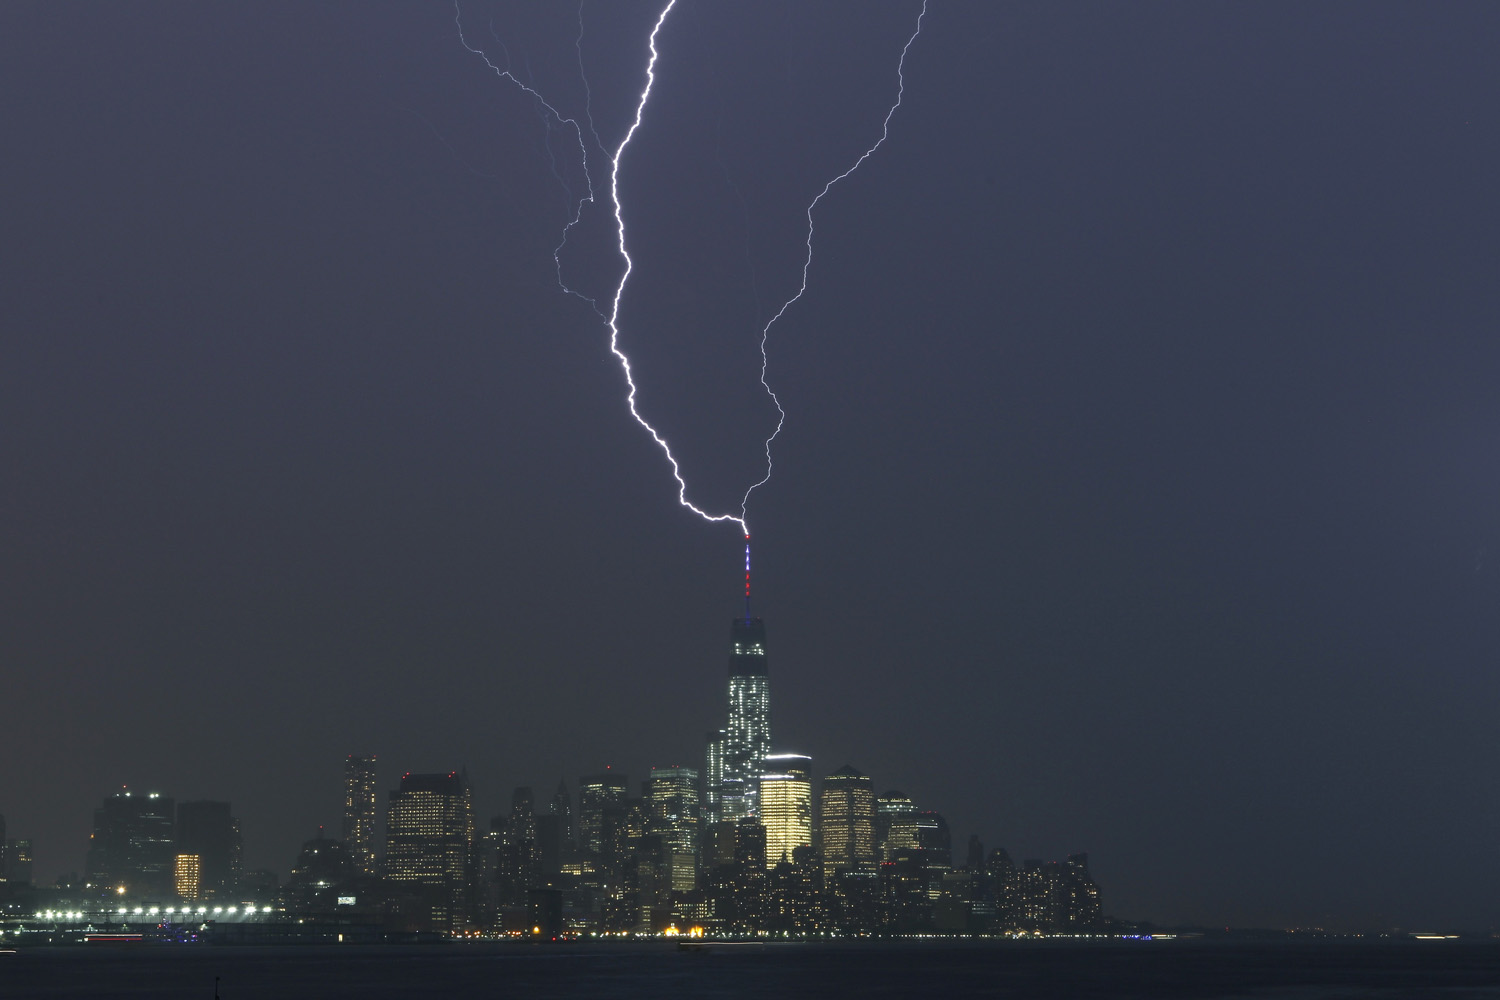 Two bolts of lightning hit the antenna on top of One World Trade Center in Lower Manhattan as an electrical storm moves over New York City on May 23, 2014.